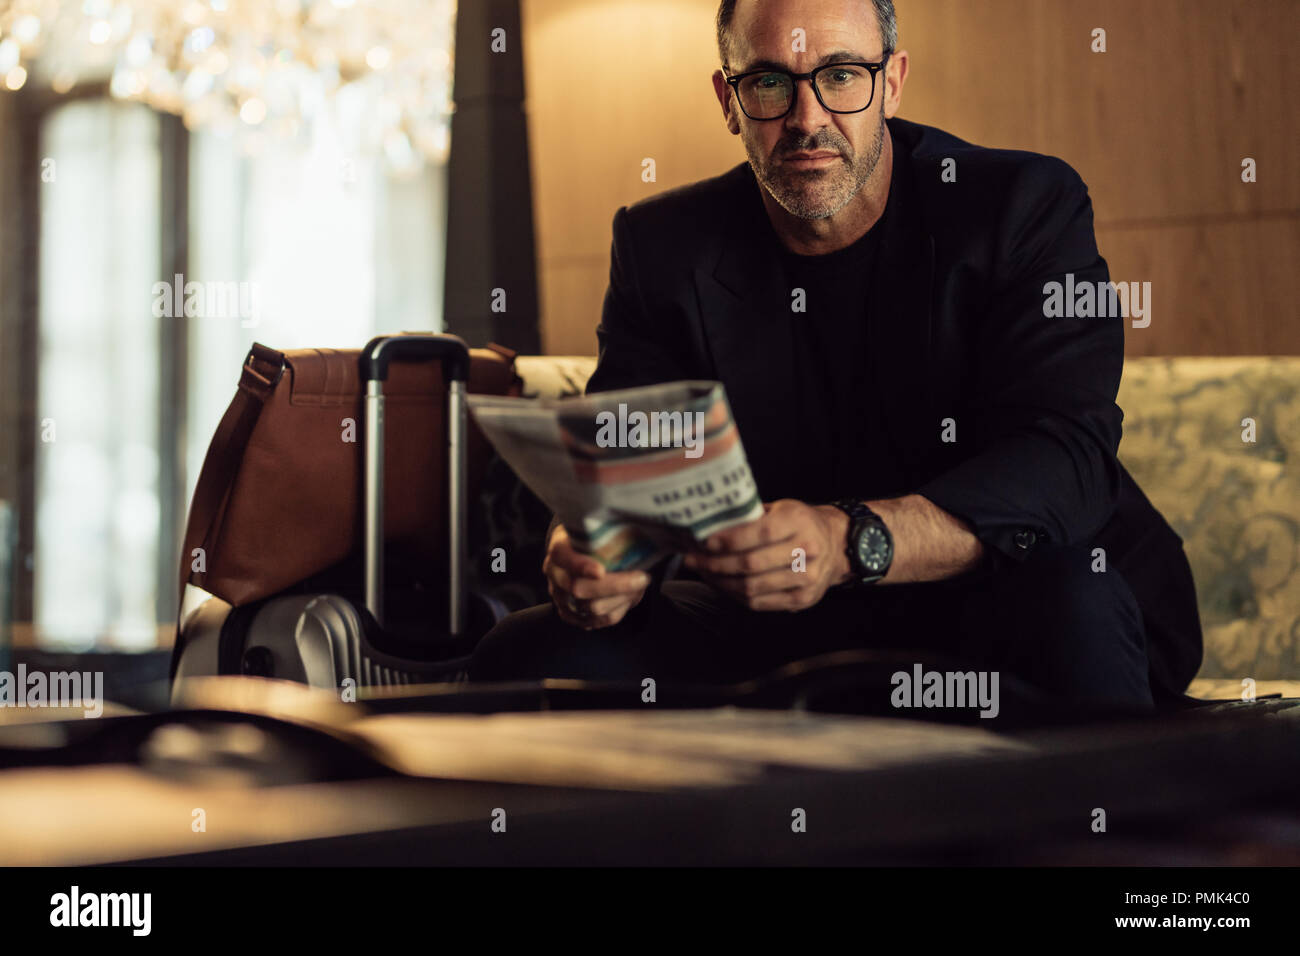 Portrait of confident mature businessman sitting in hotel foyer with his luggage on the side. CEO waiting in hotel lobby. - Stock Image